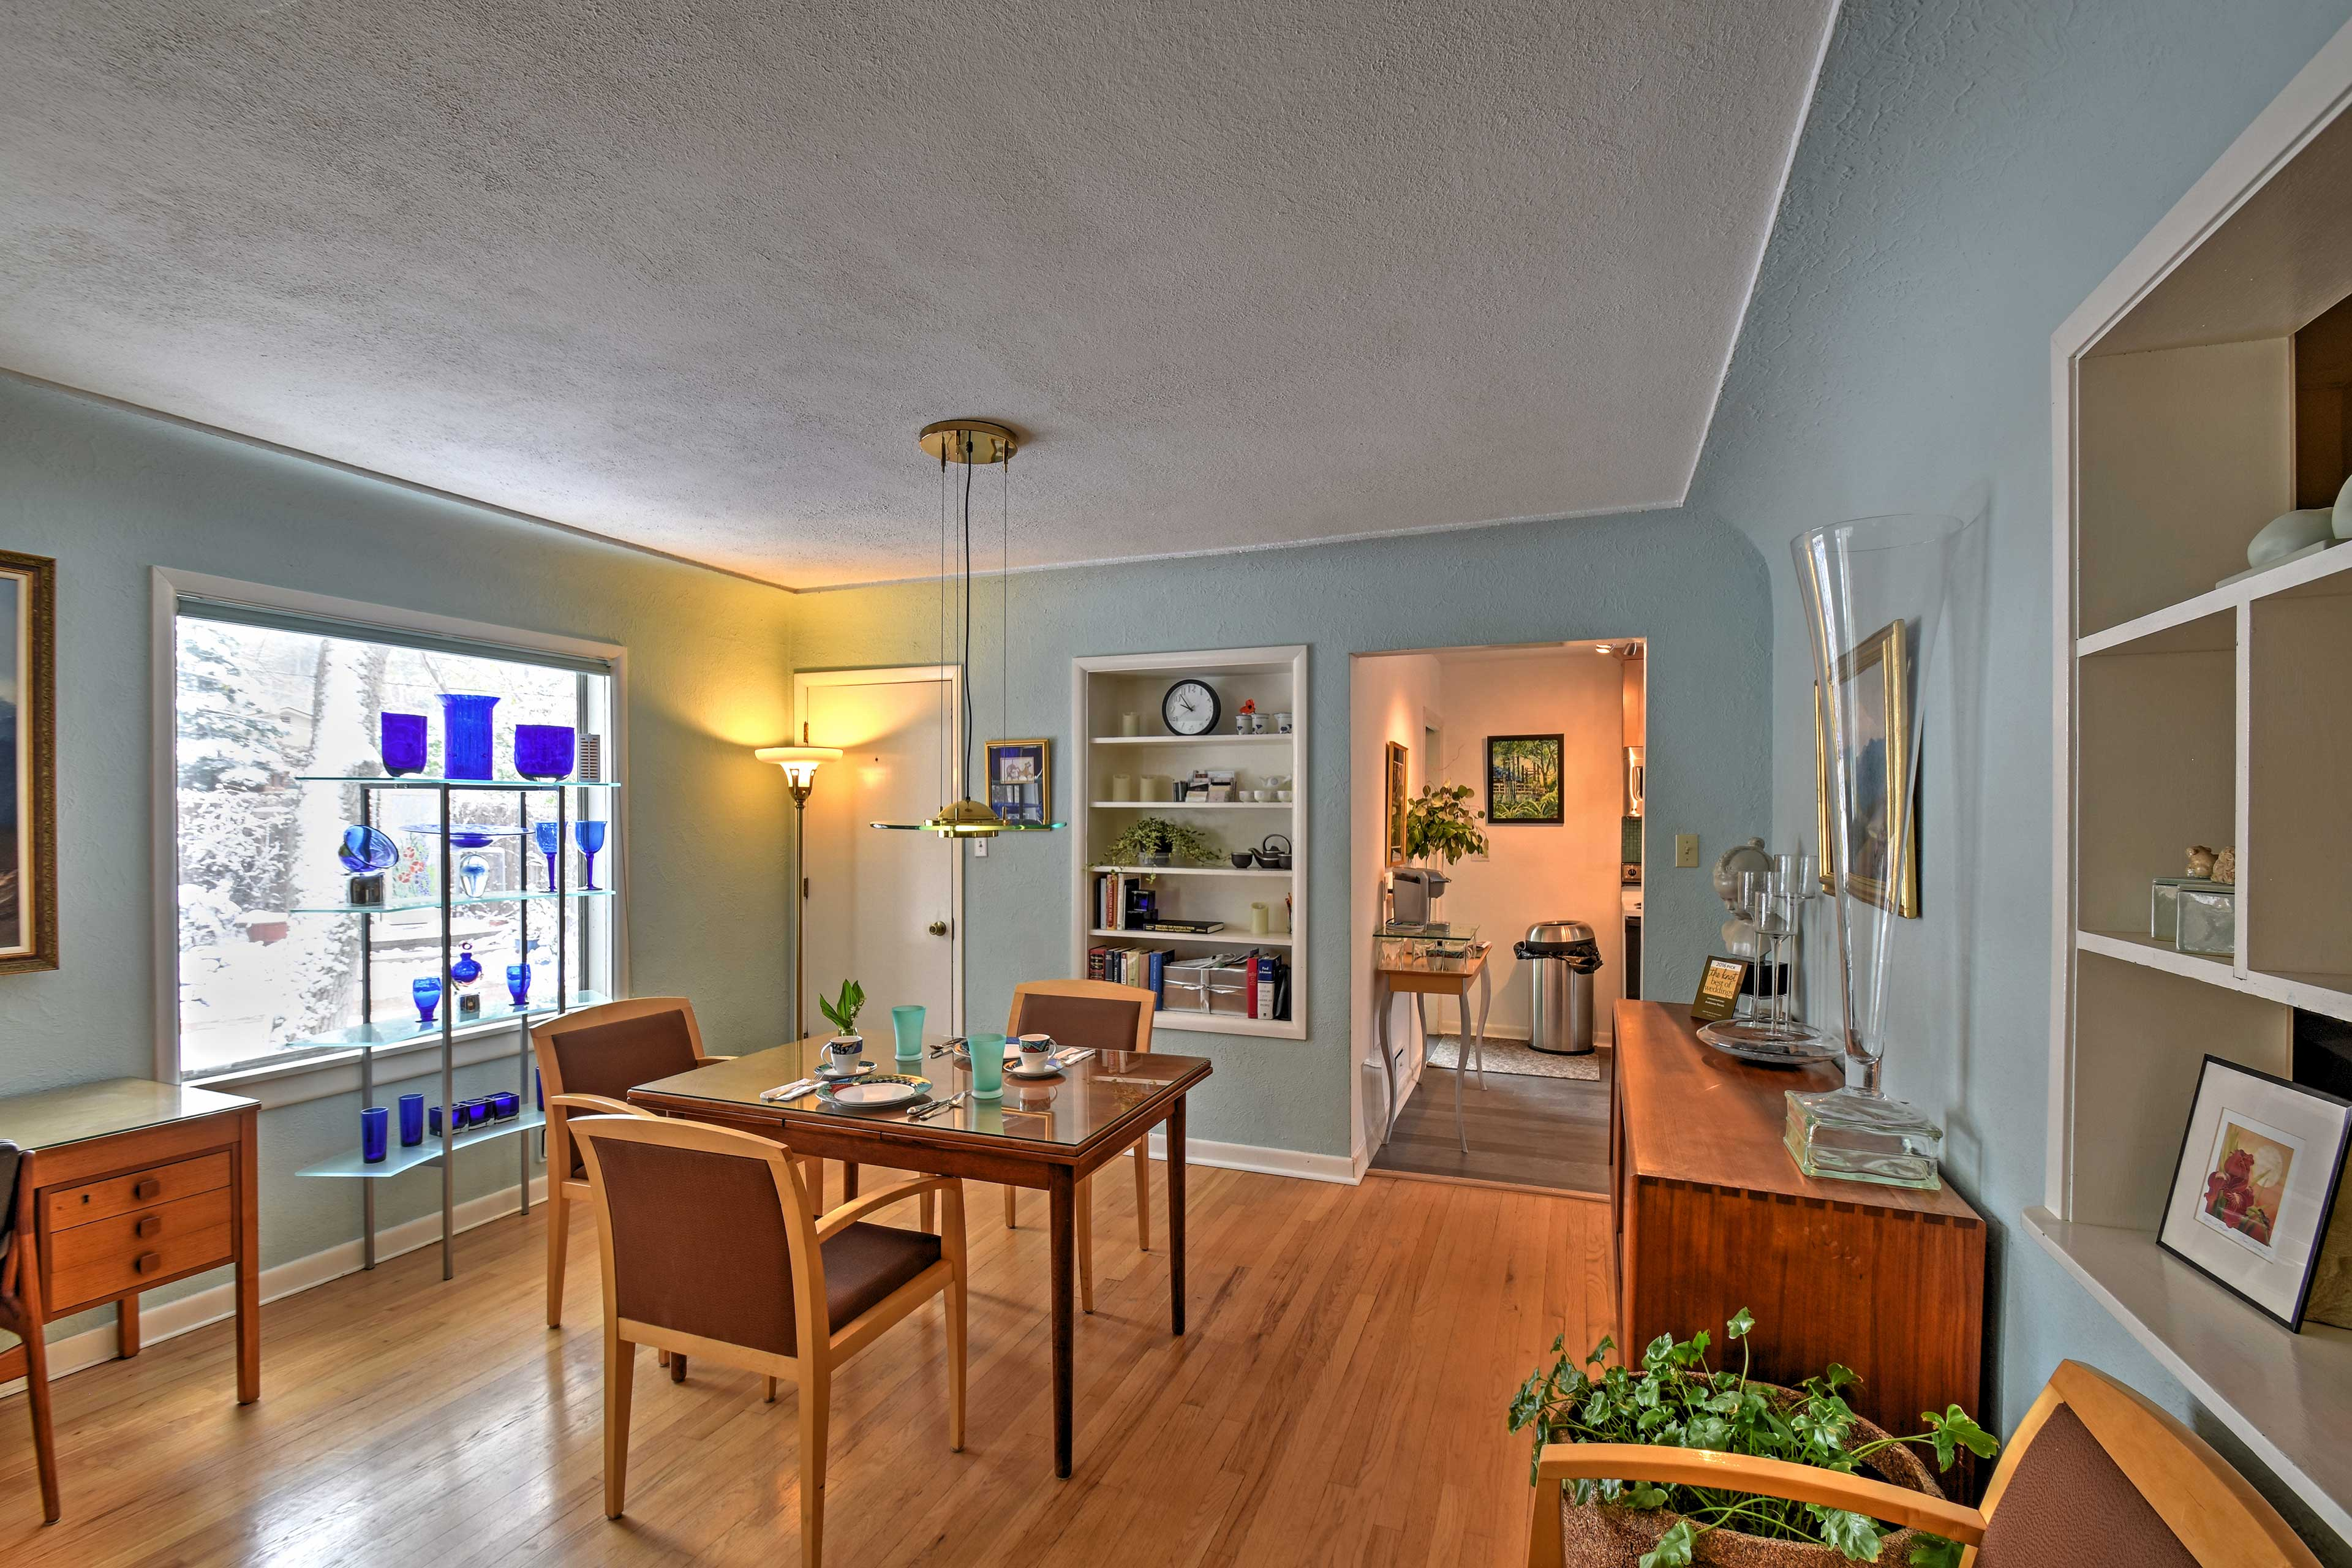 Enjoy meals from the dining room table as natural sunlight fills the home.